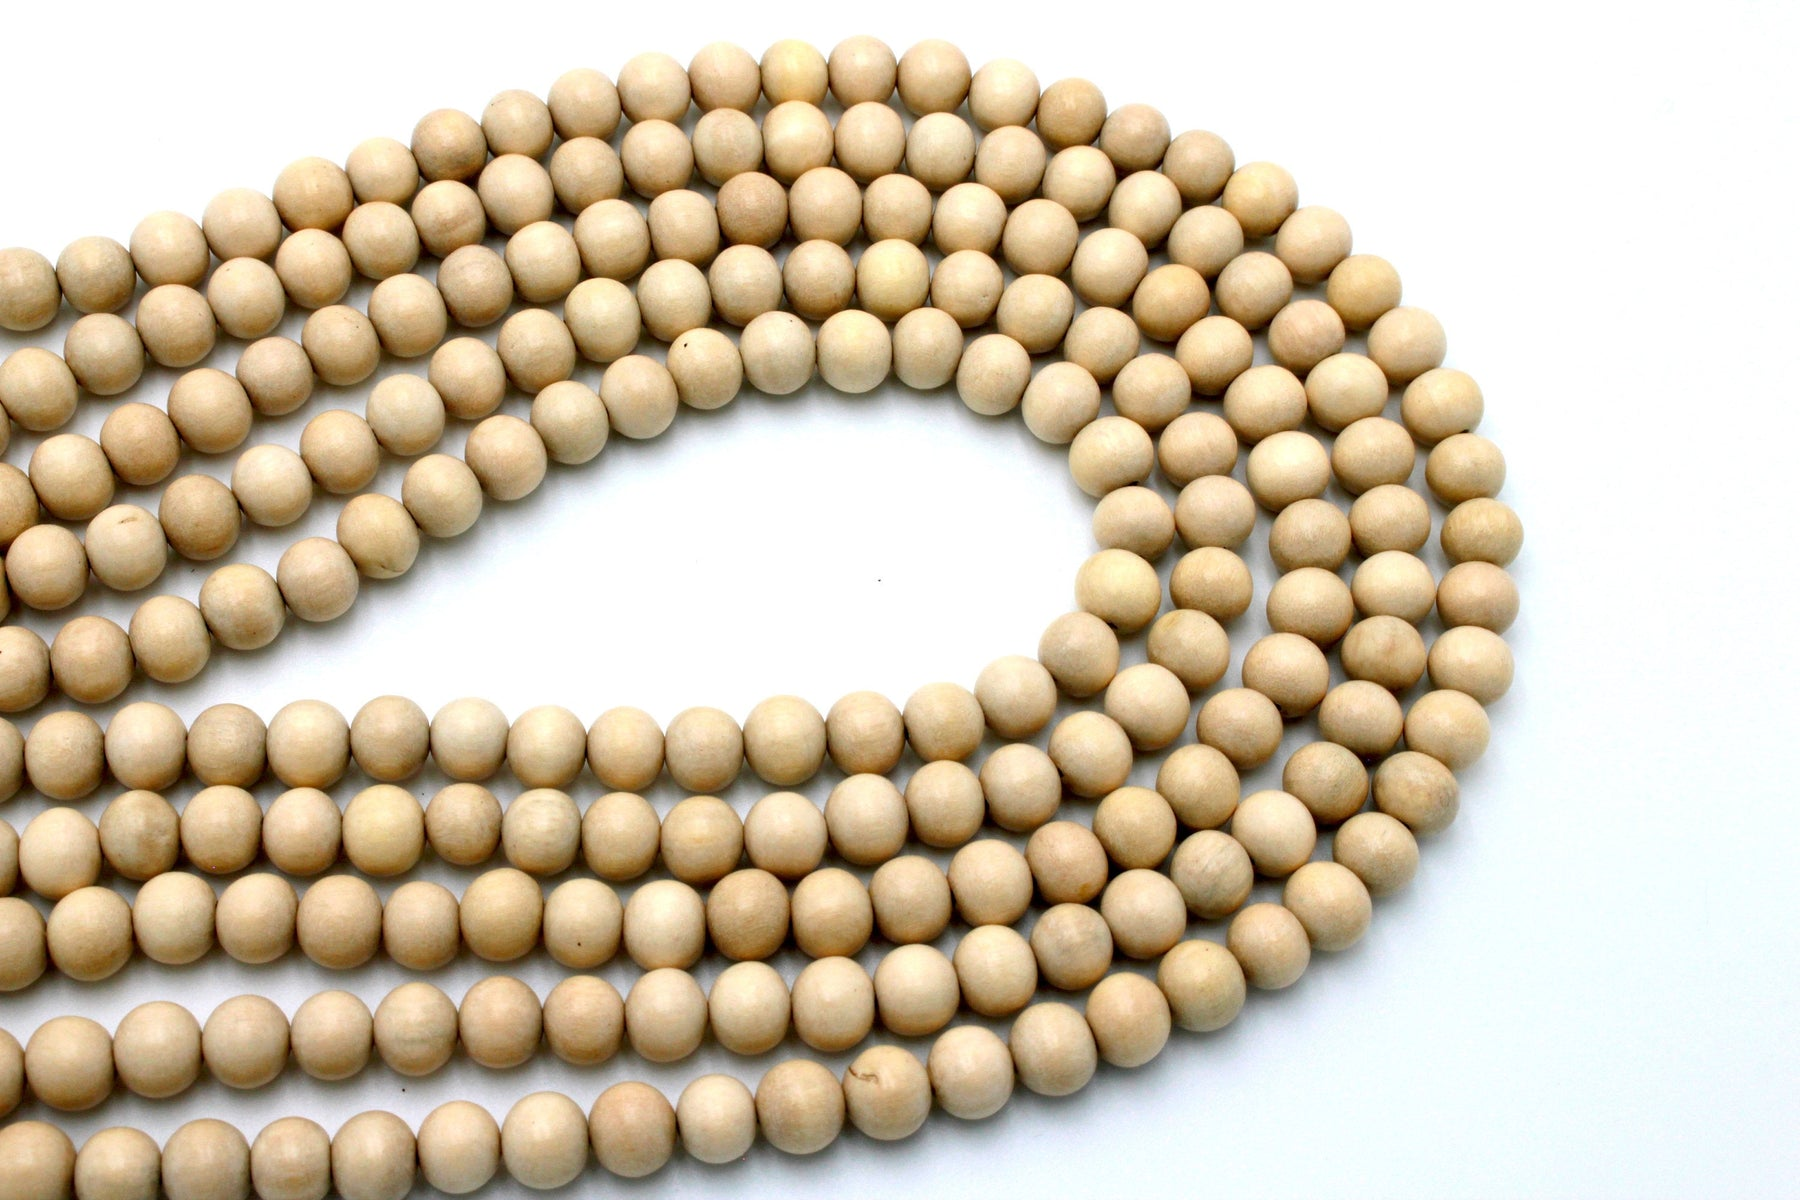 beige wood beads, 8mm, round, waxed, 1 strand, 16 inches, approx. 48 beads, round wood beads, jewelry supplies, beading supplies